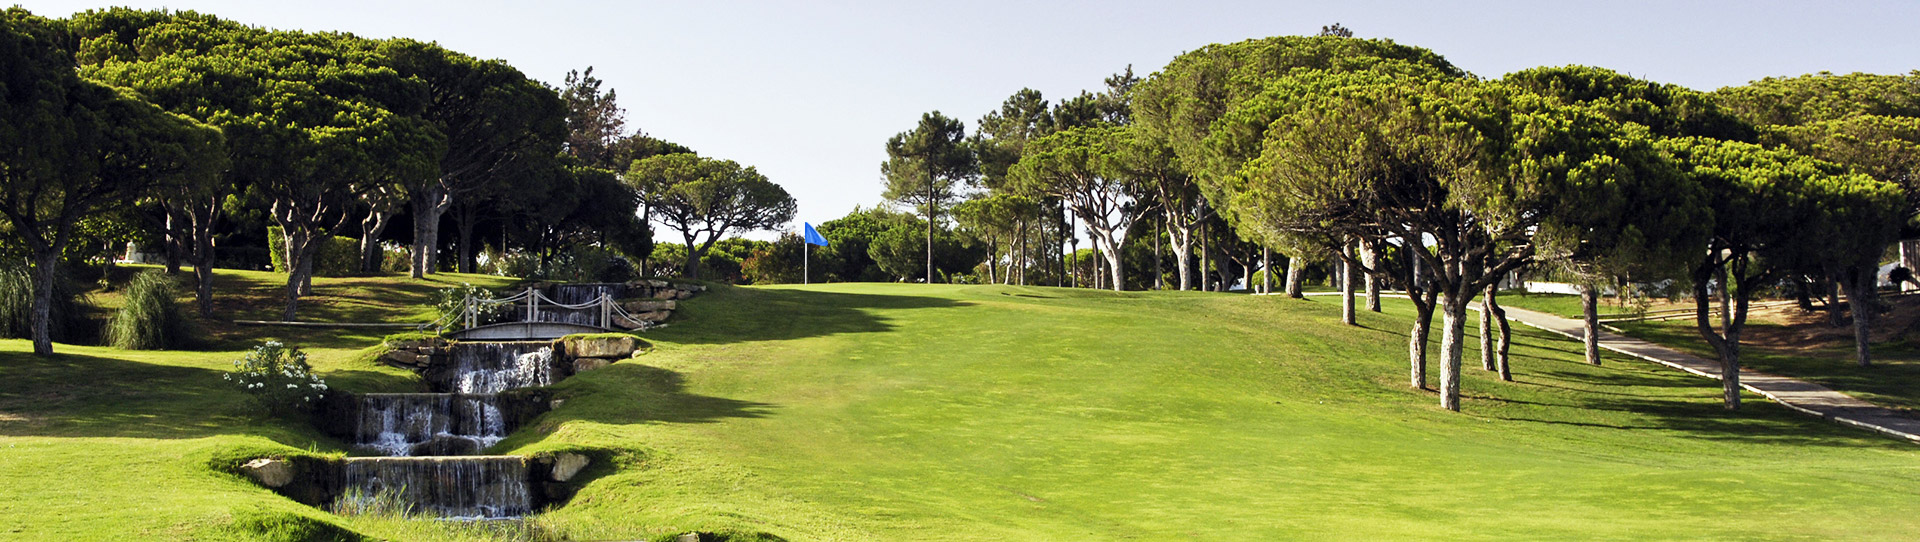 Vale do Lobo Double Joy - Photo 2